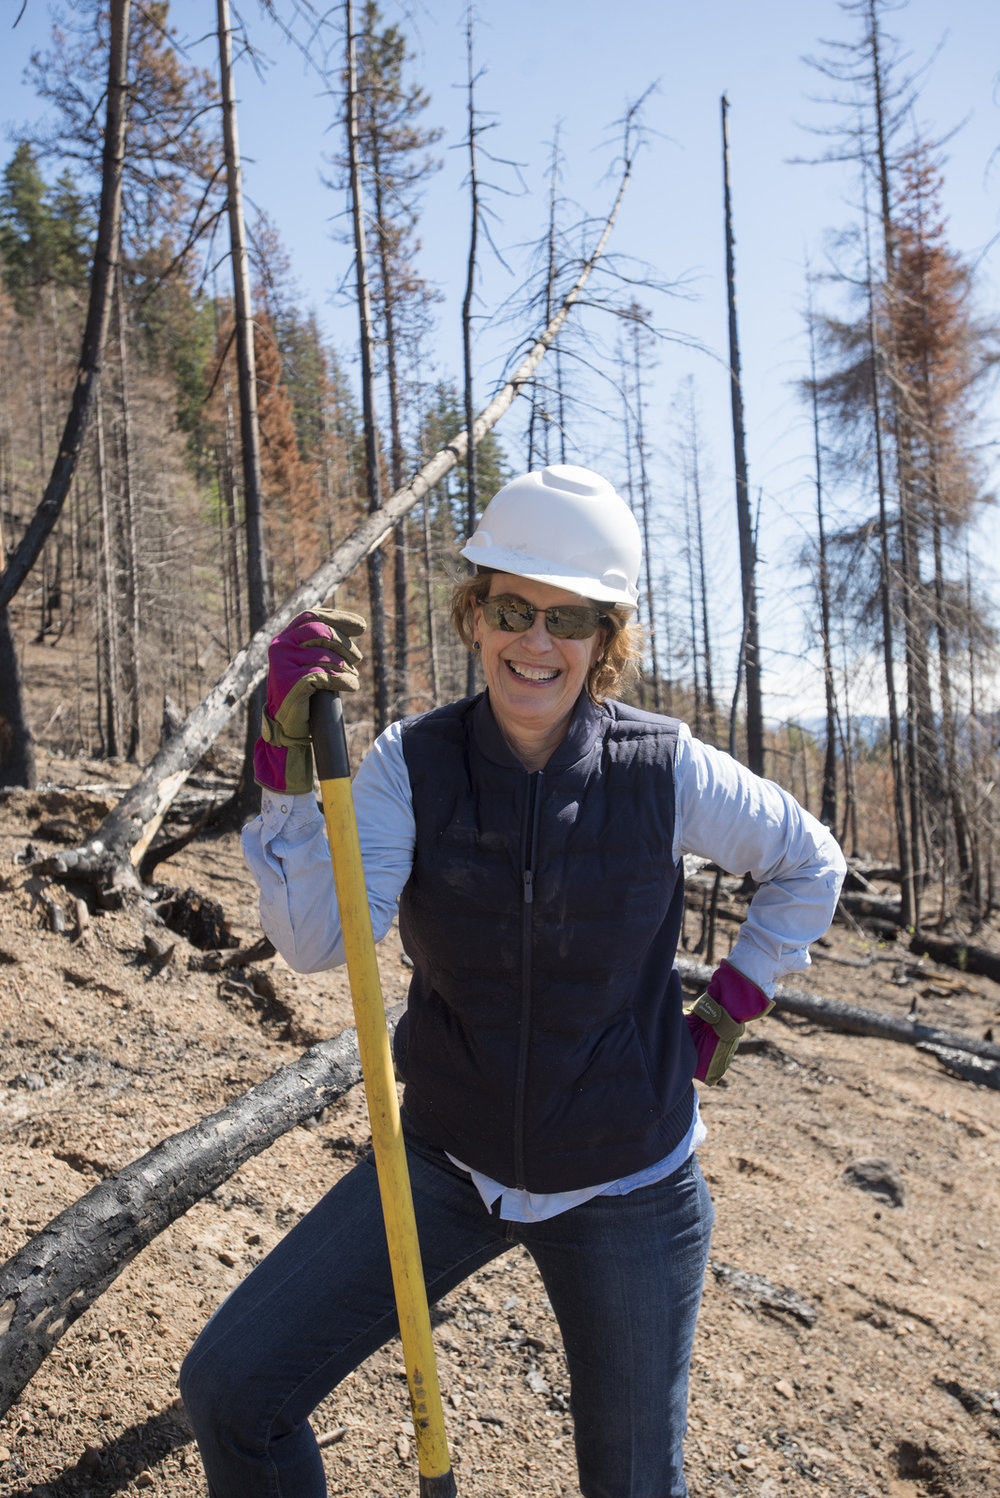 Kate Janeway plants saplings in a burned area near Roslyn. Photo © Hannah Letinich